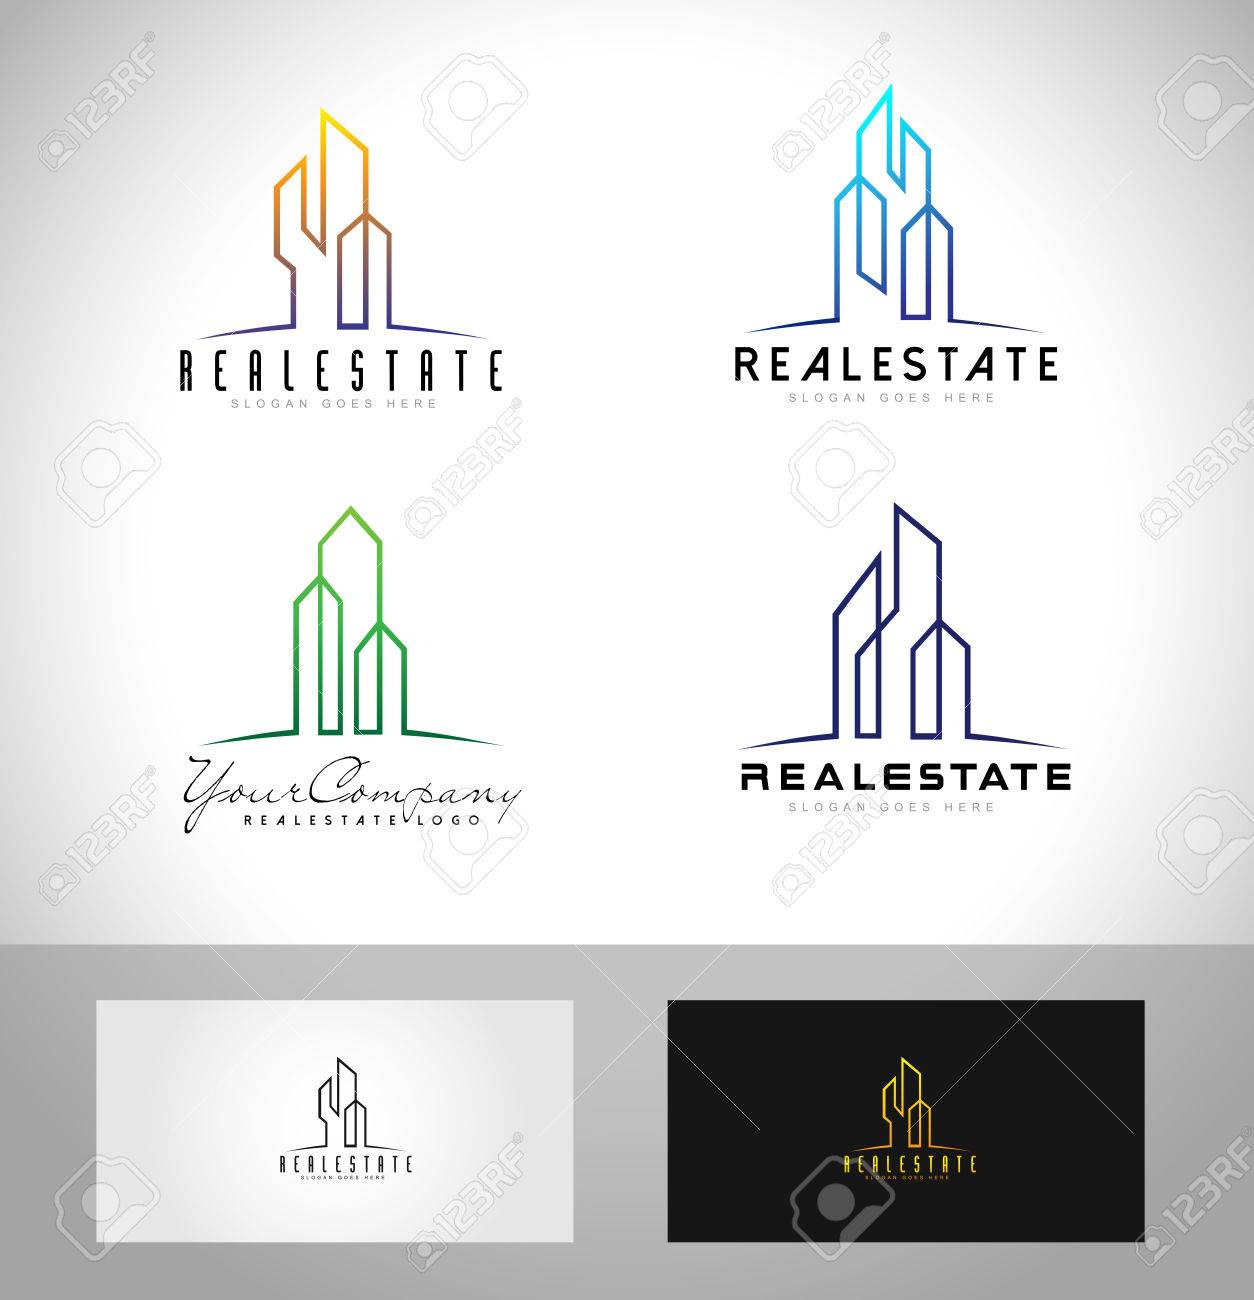 Real Estate Design. Creative Abstract Real Estate Icon And Business ...